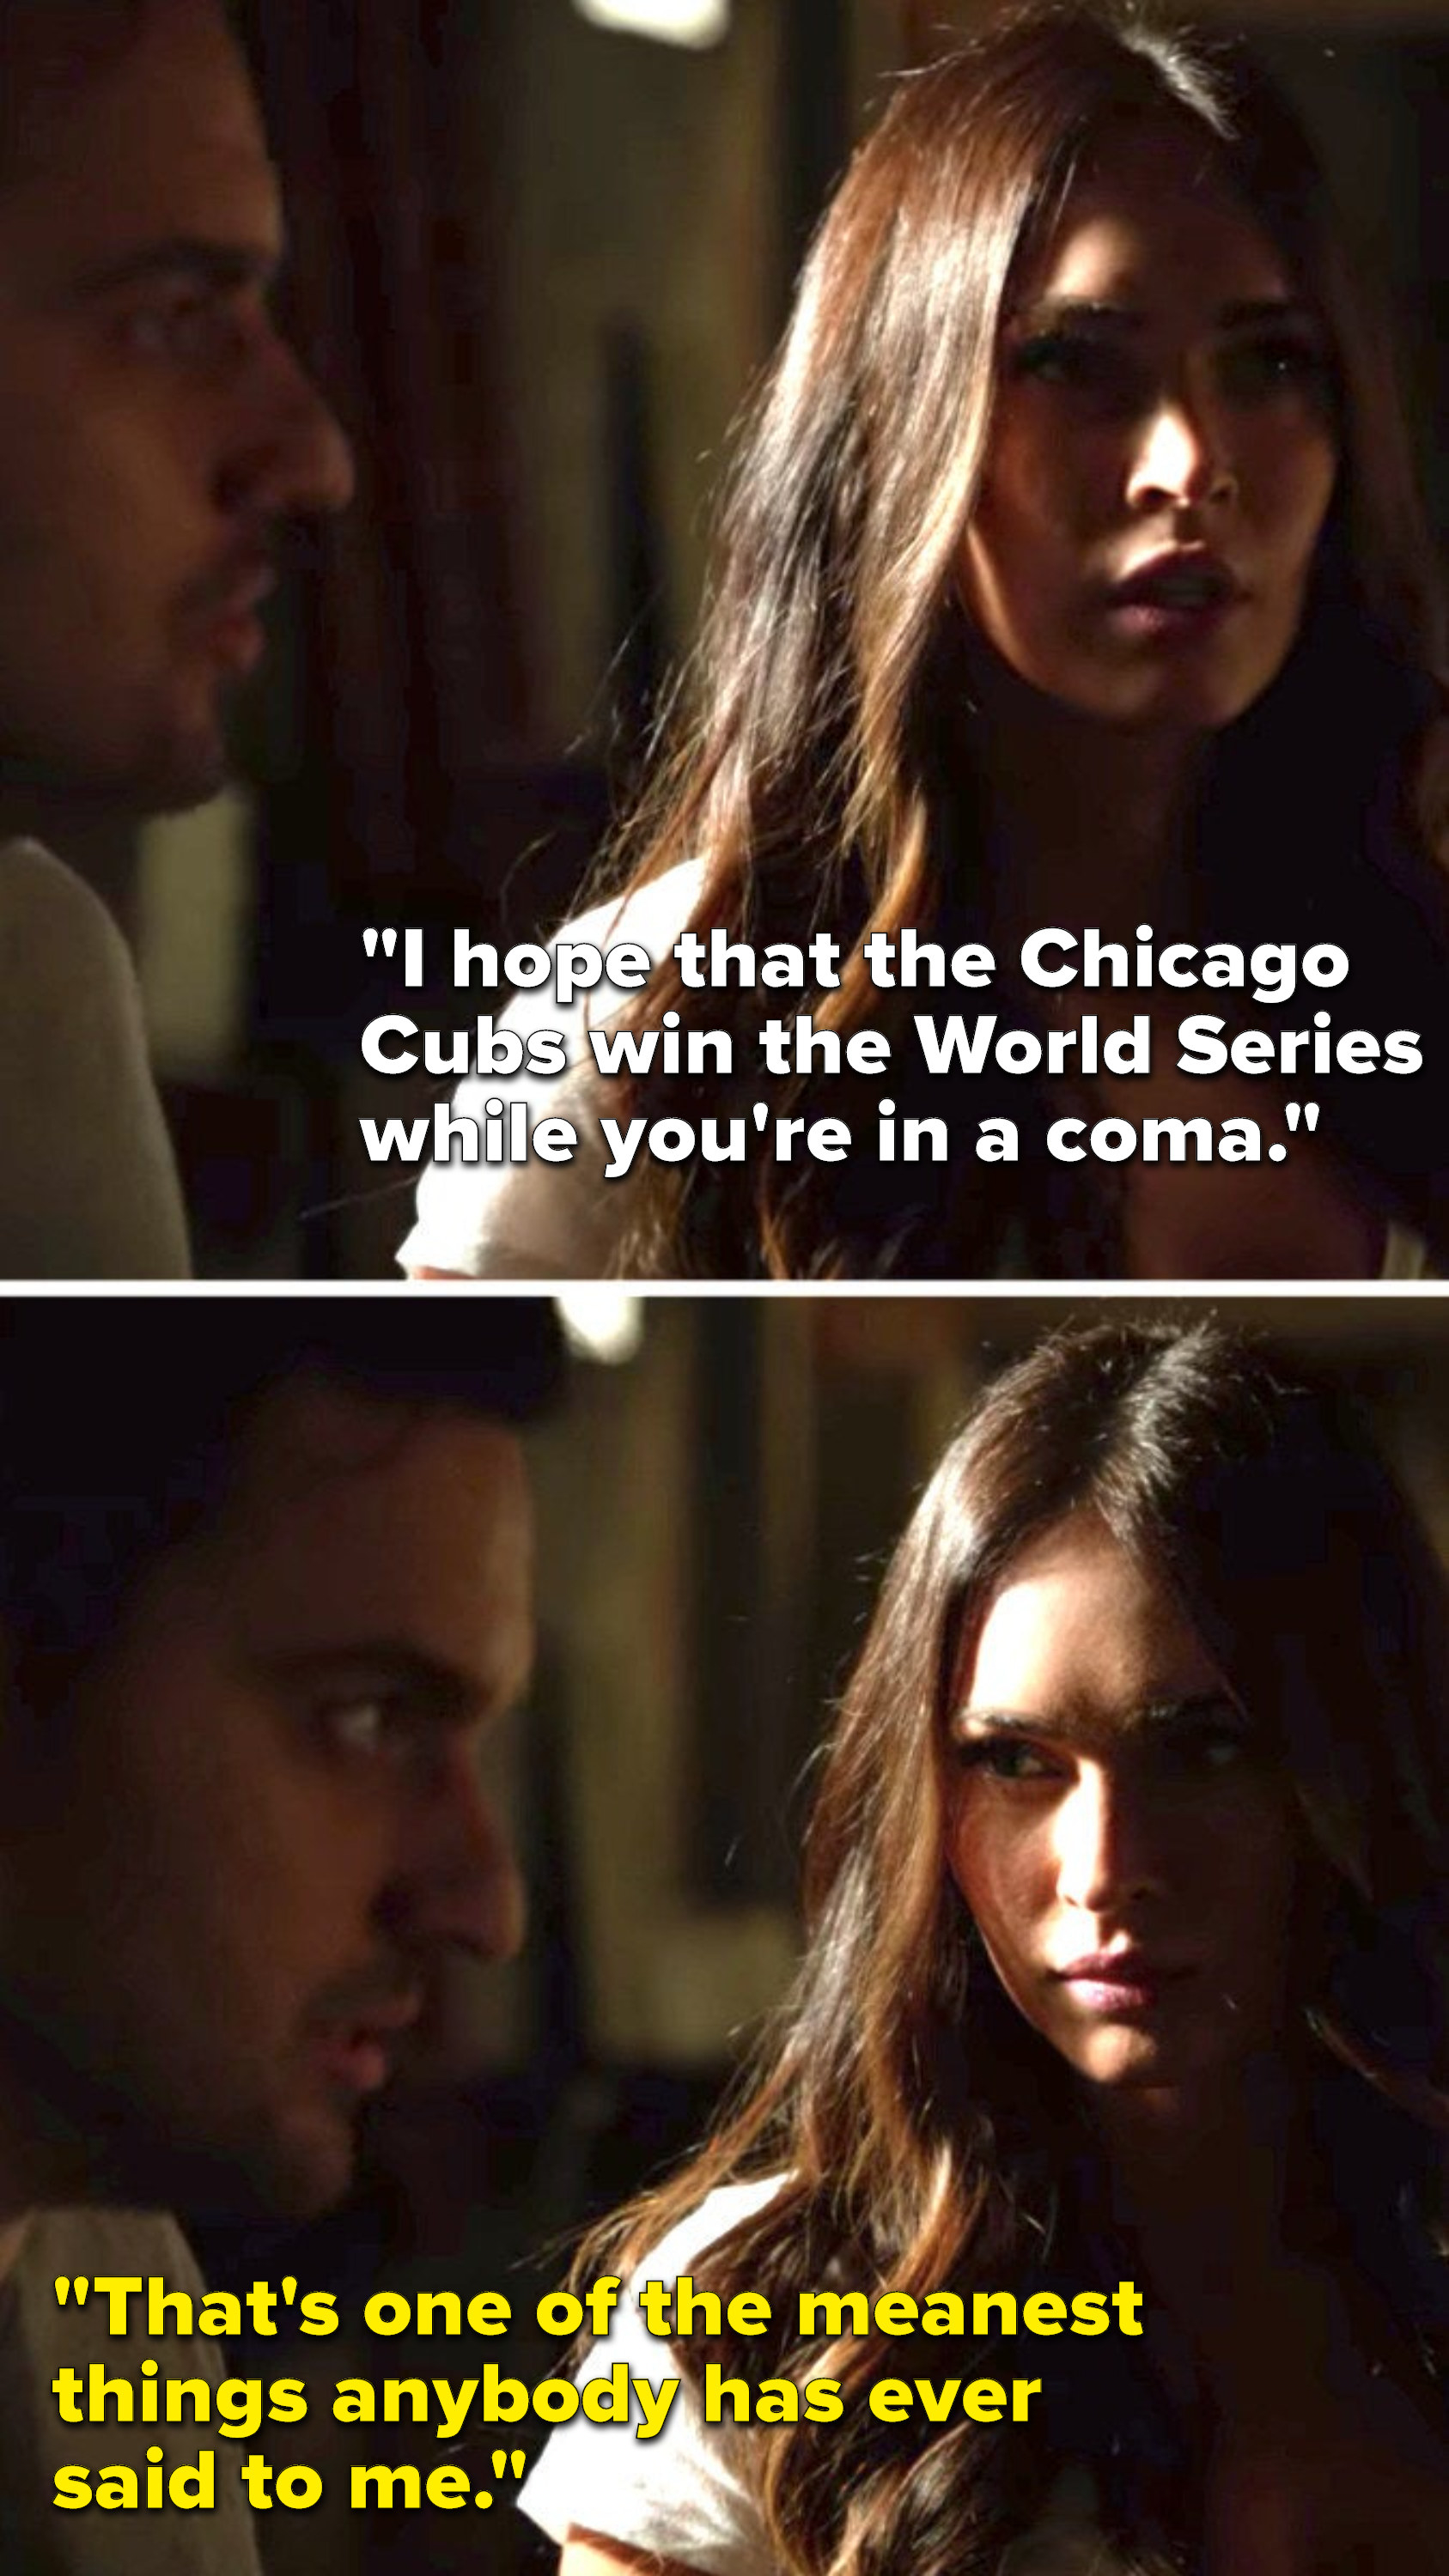 """Reagan says, """"I hope that the Chicago Cubs win the World Series while you're in a coma,"""" and Nick says, """"That's one of the meanest things anybody has ever said to me"""""""